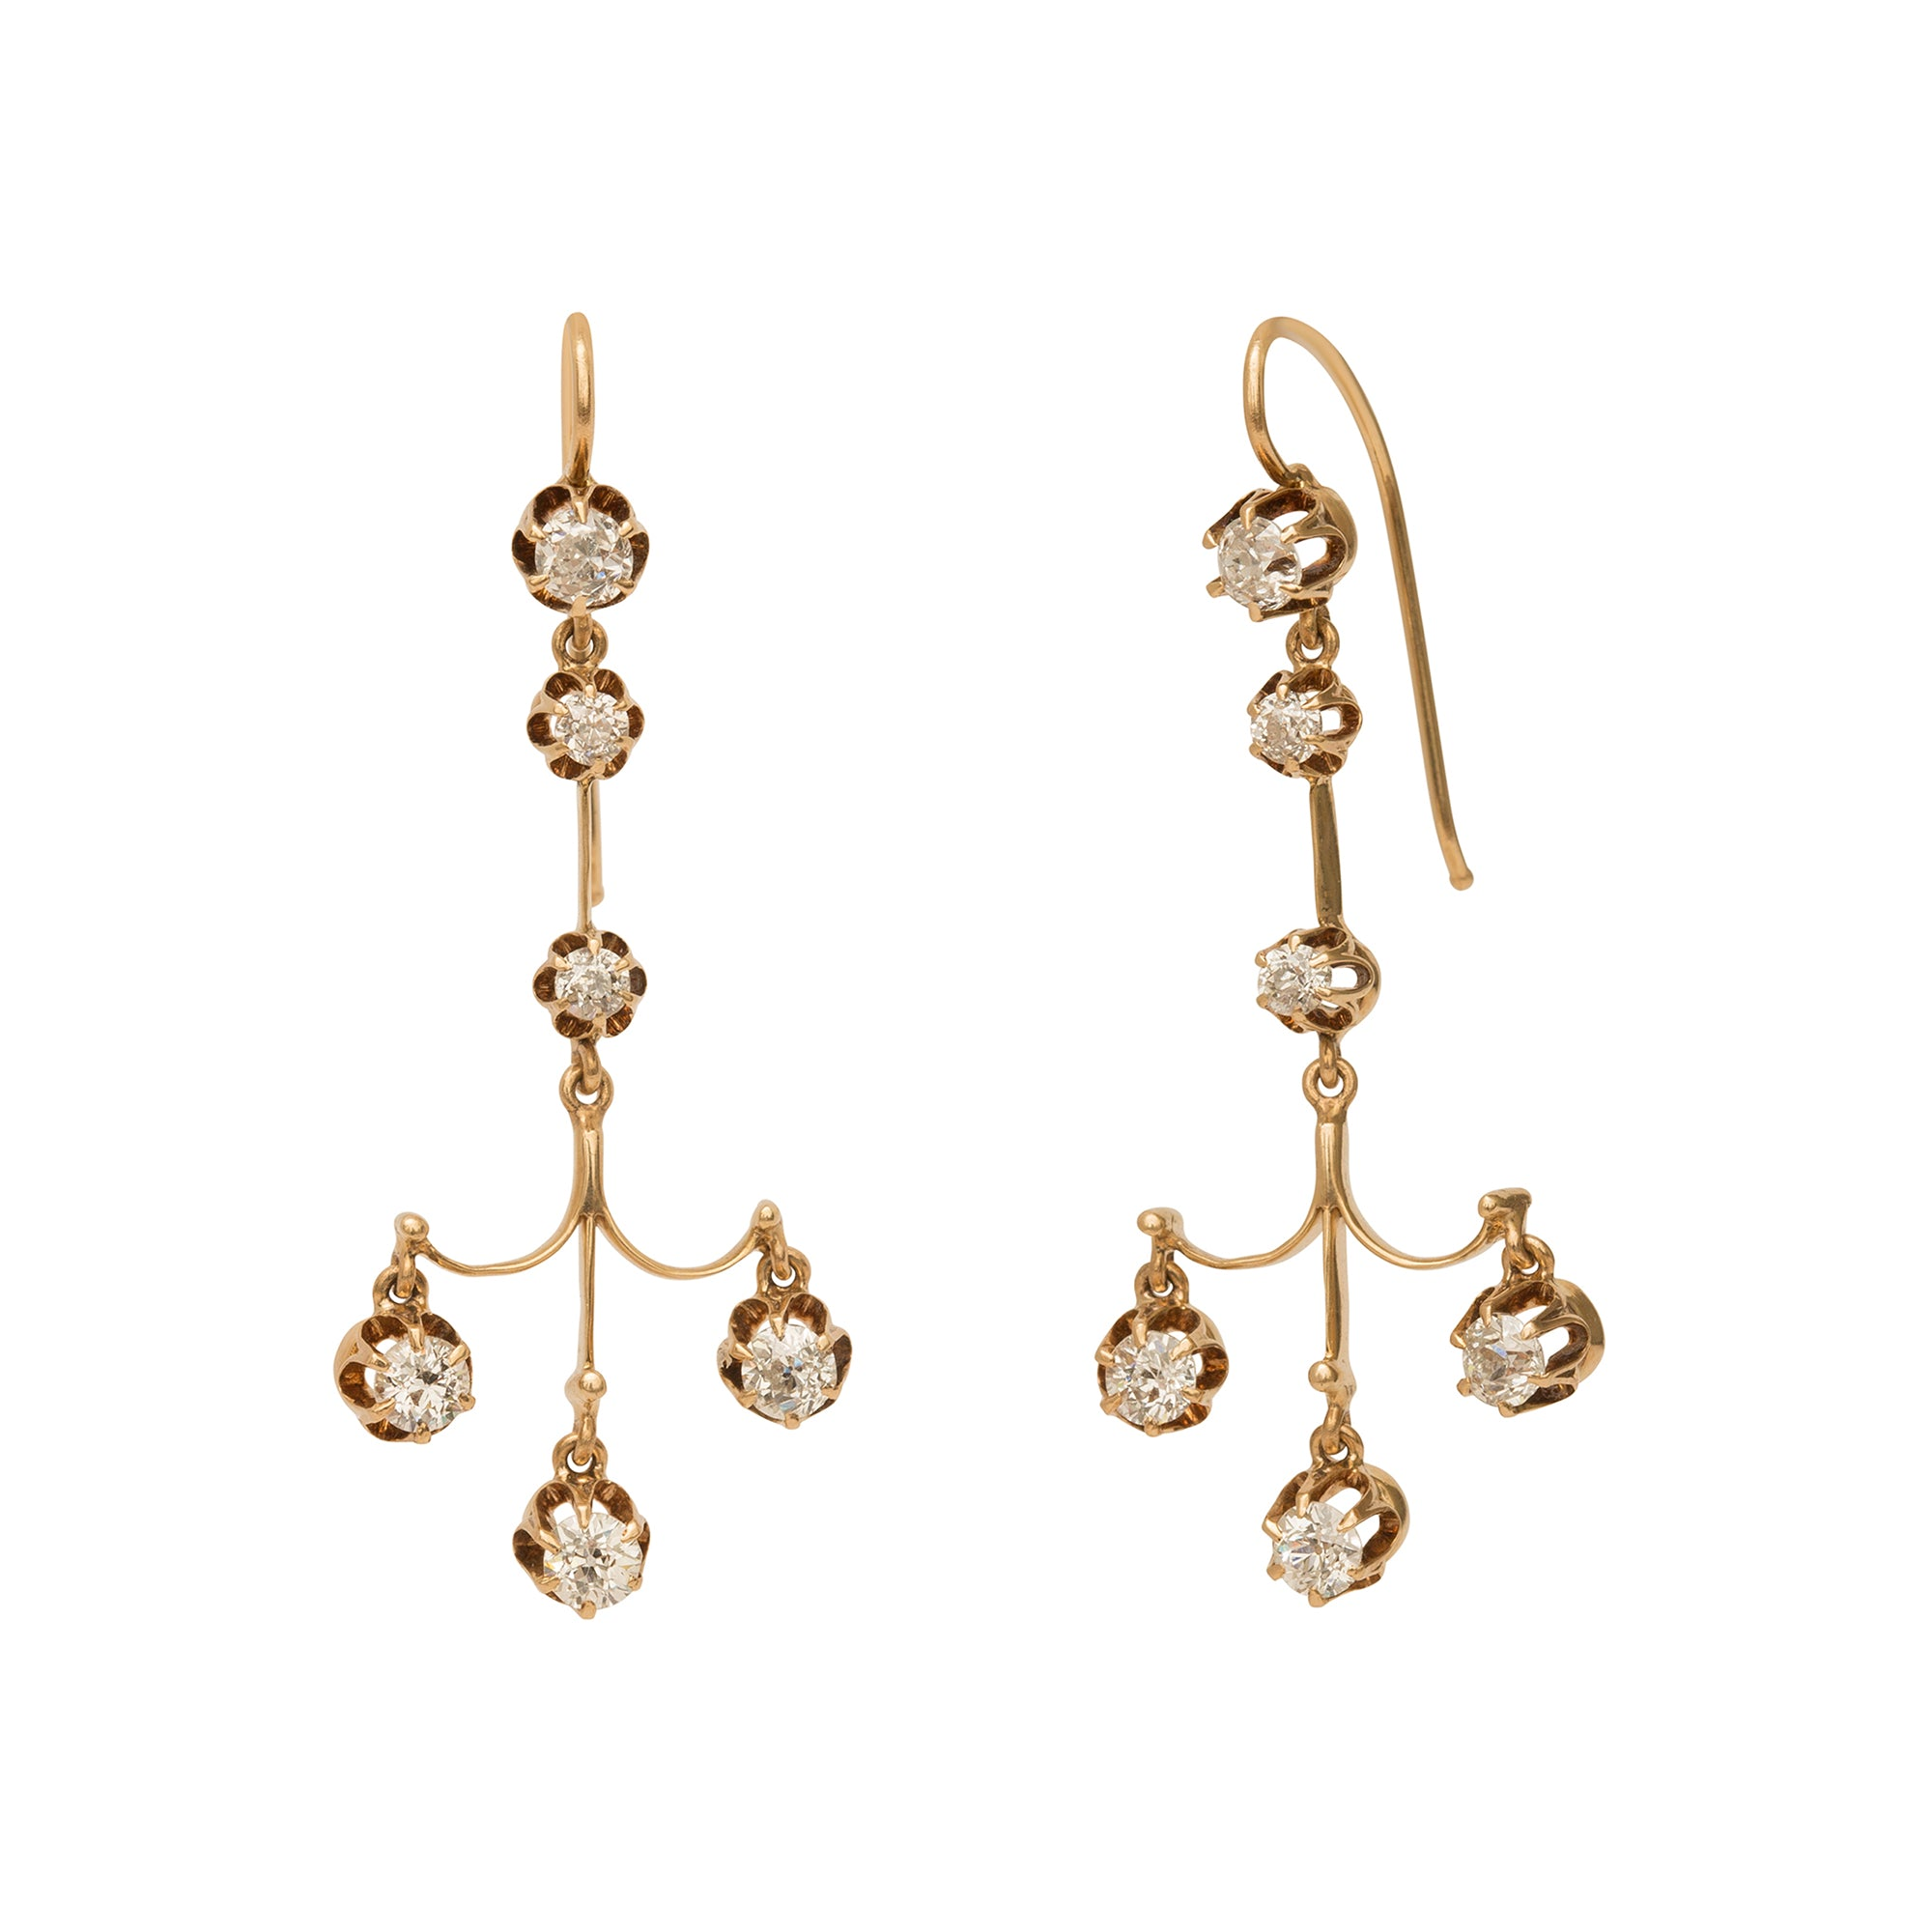 Diamond Chandelier Earrings from Broken English Jewelry